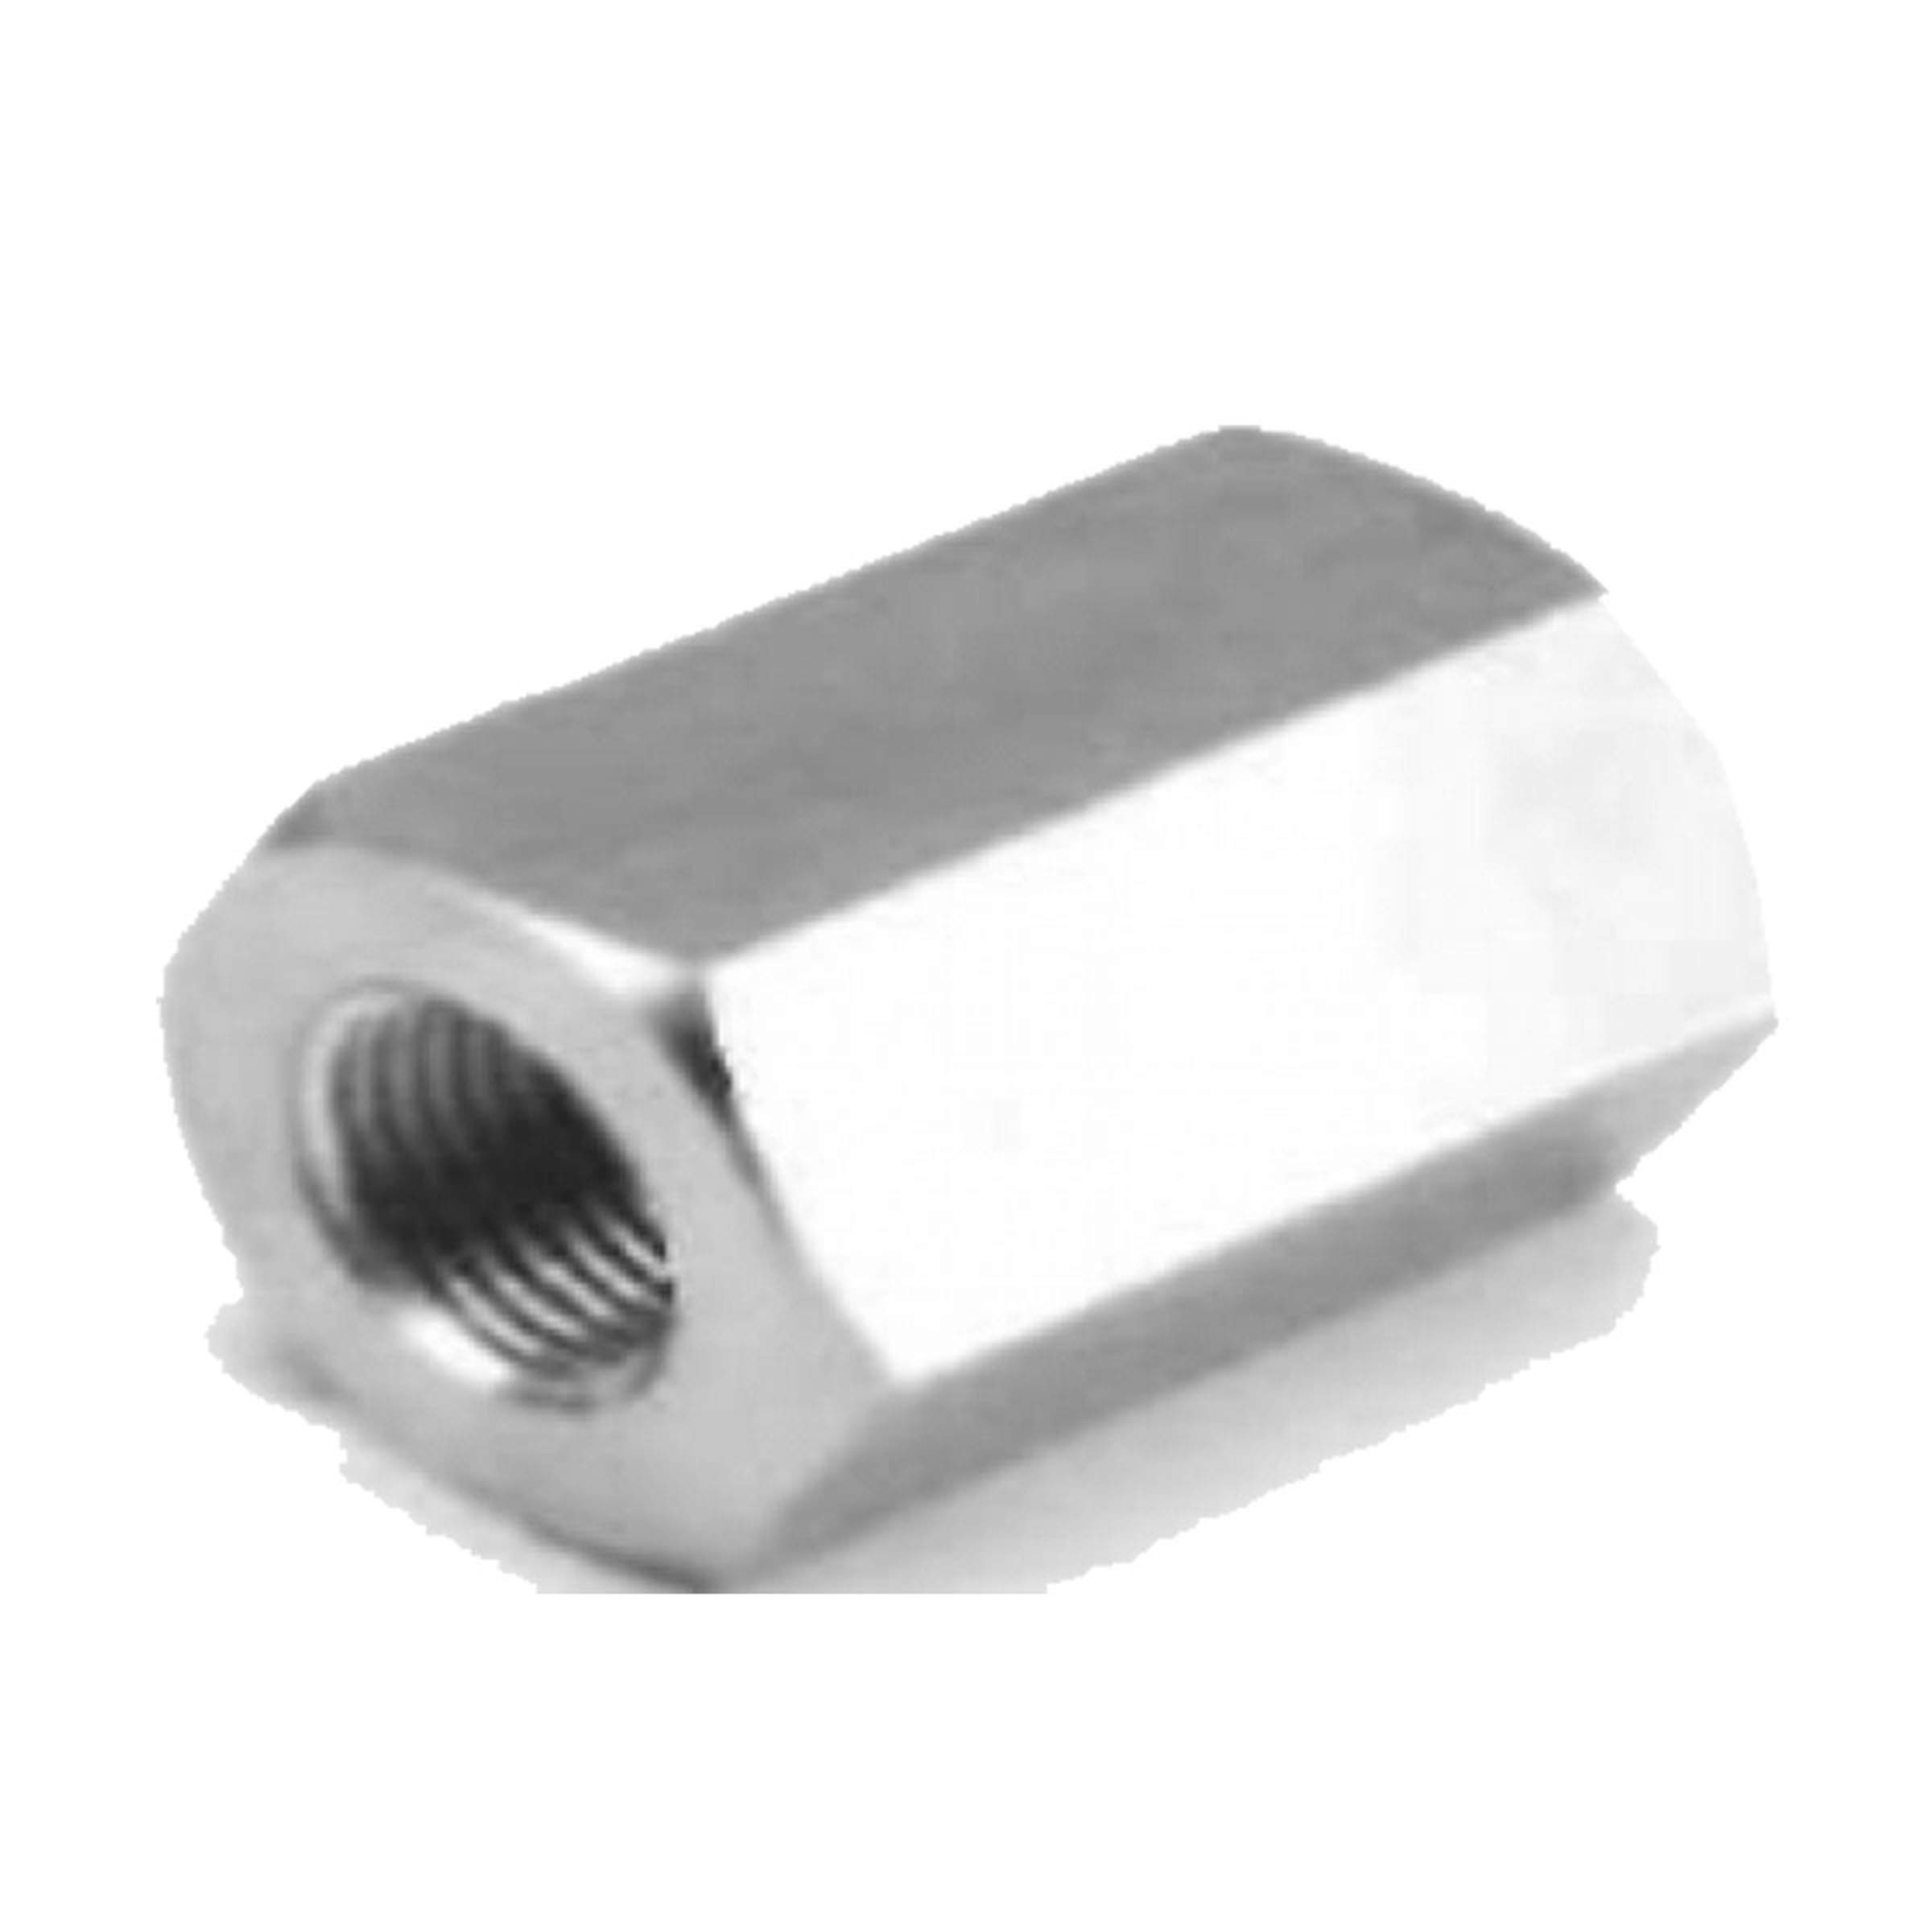 mistcooling Stainless Steel Hex Coupling - (3/4'' X 3/4'' Coupling) by mistcooling